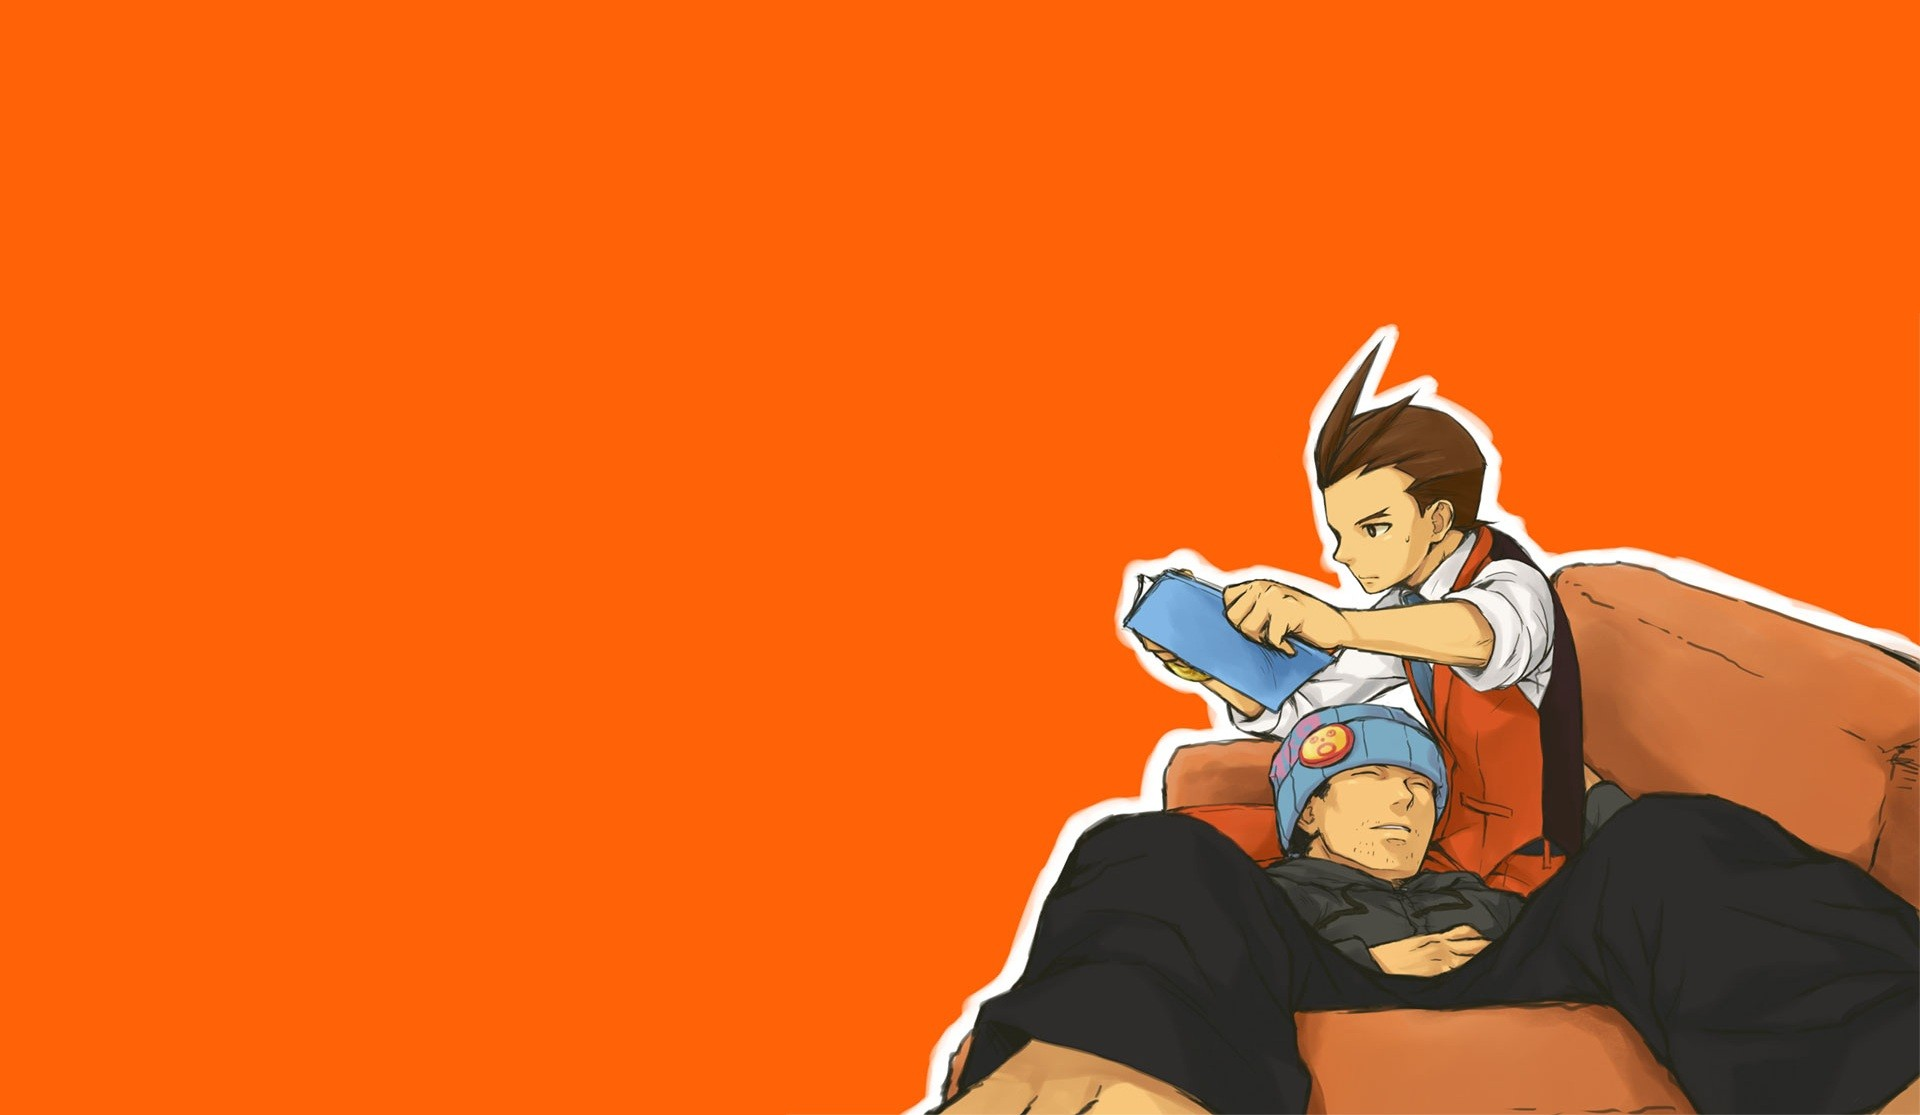 Video Game   Phoenix Wright Ace Attorney Wallpaper 1920x1115